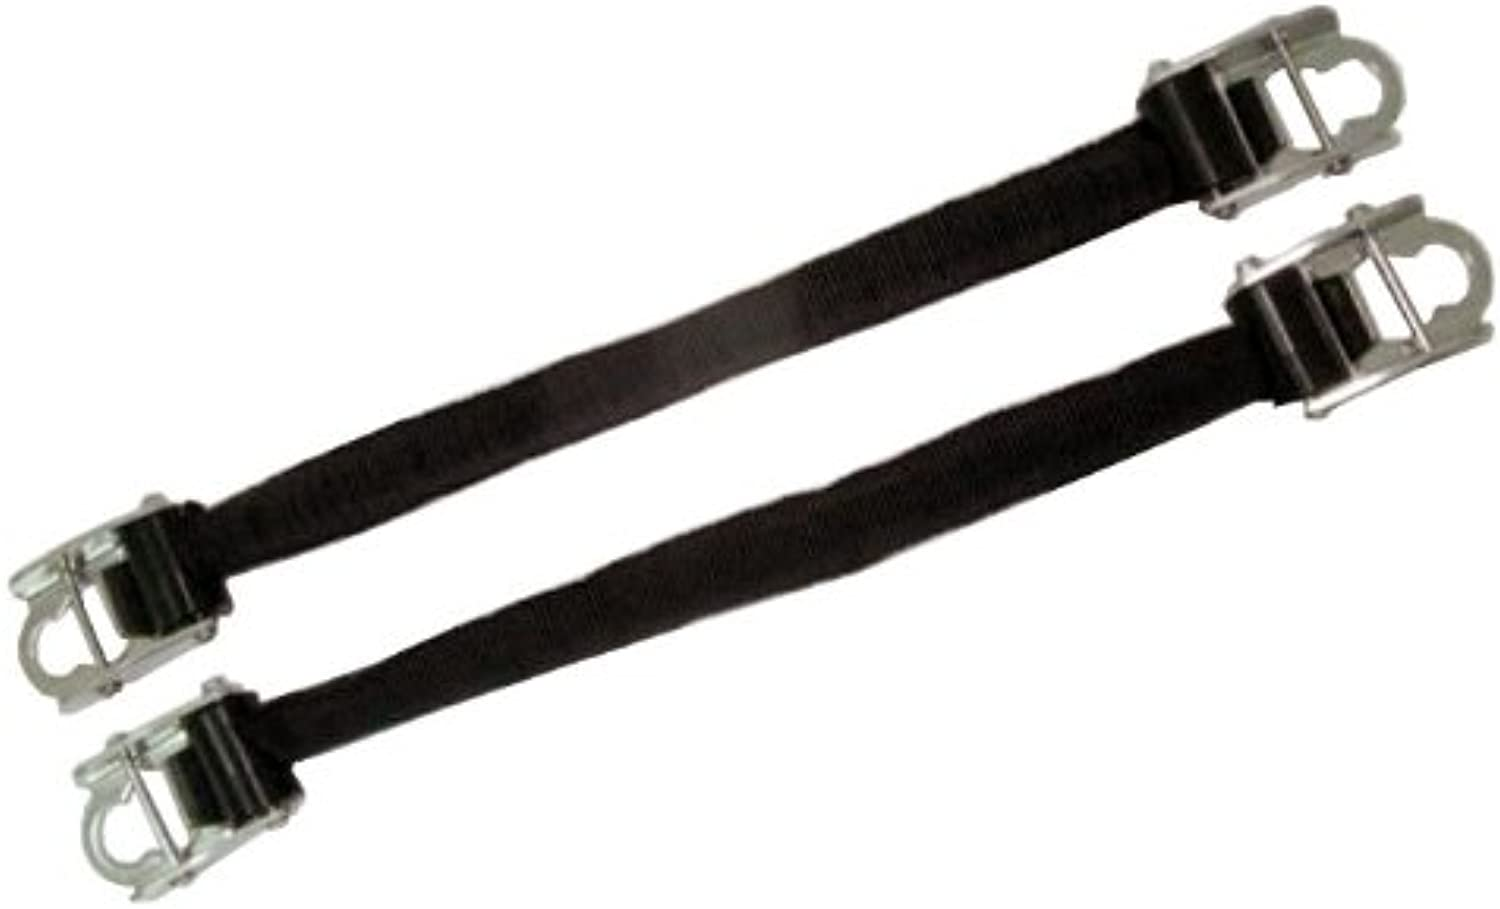 Storm Stainless Steel Spring Straps (Pair)